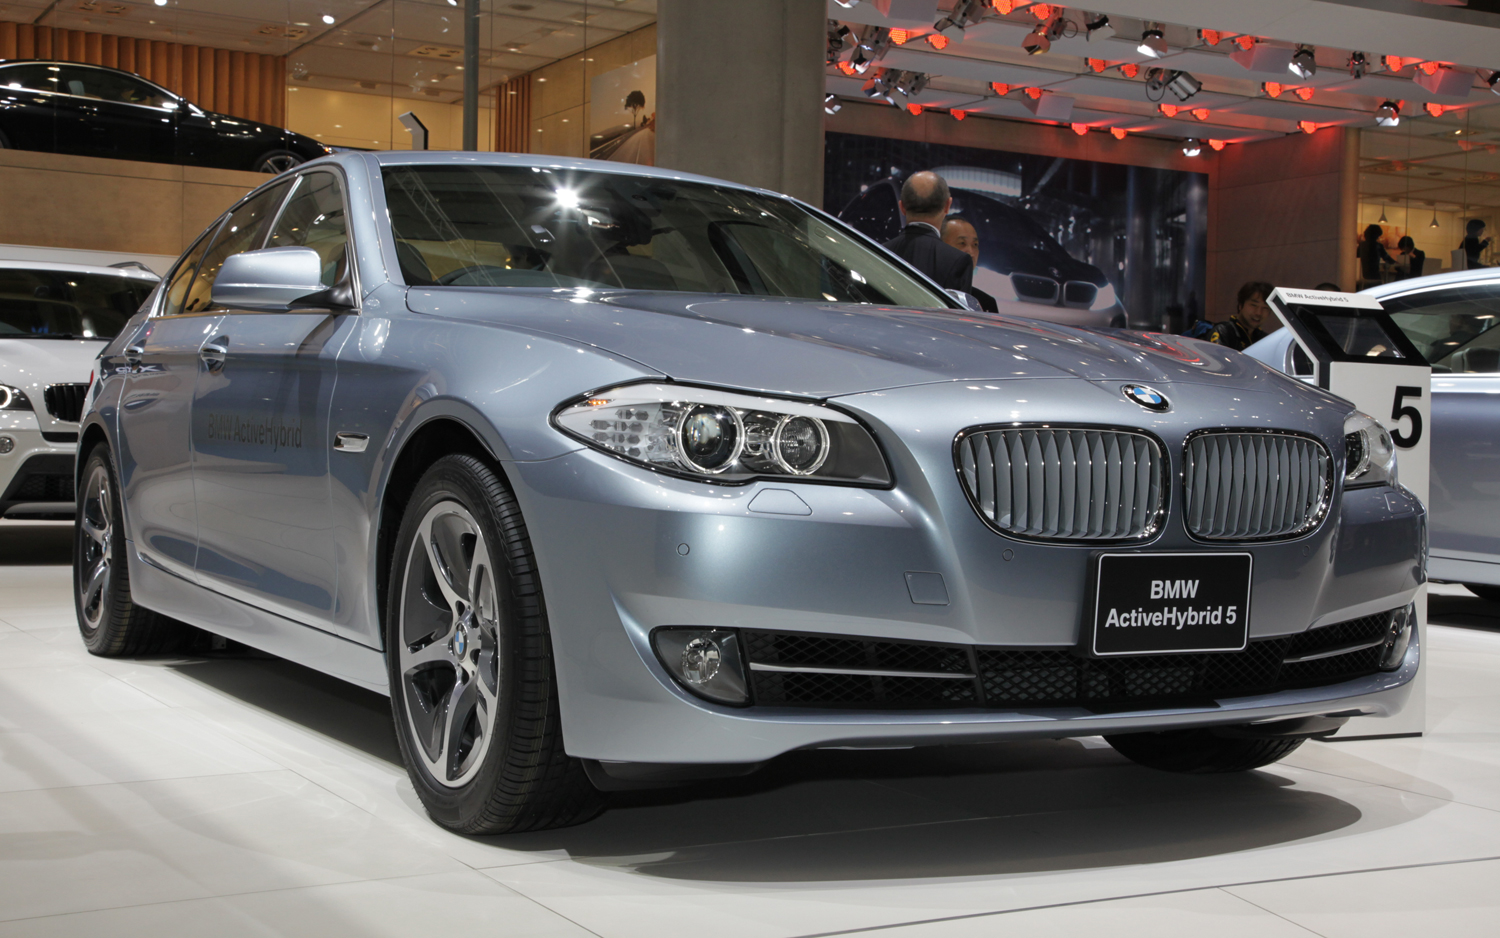 BMW ActiveHybrid 5 #12